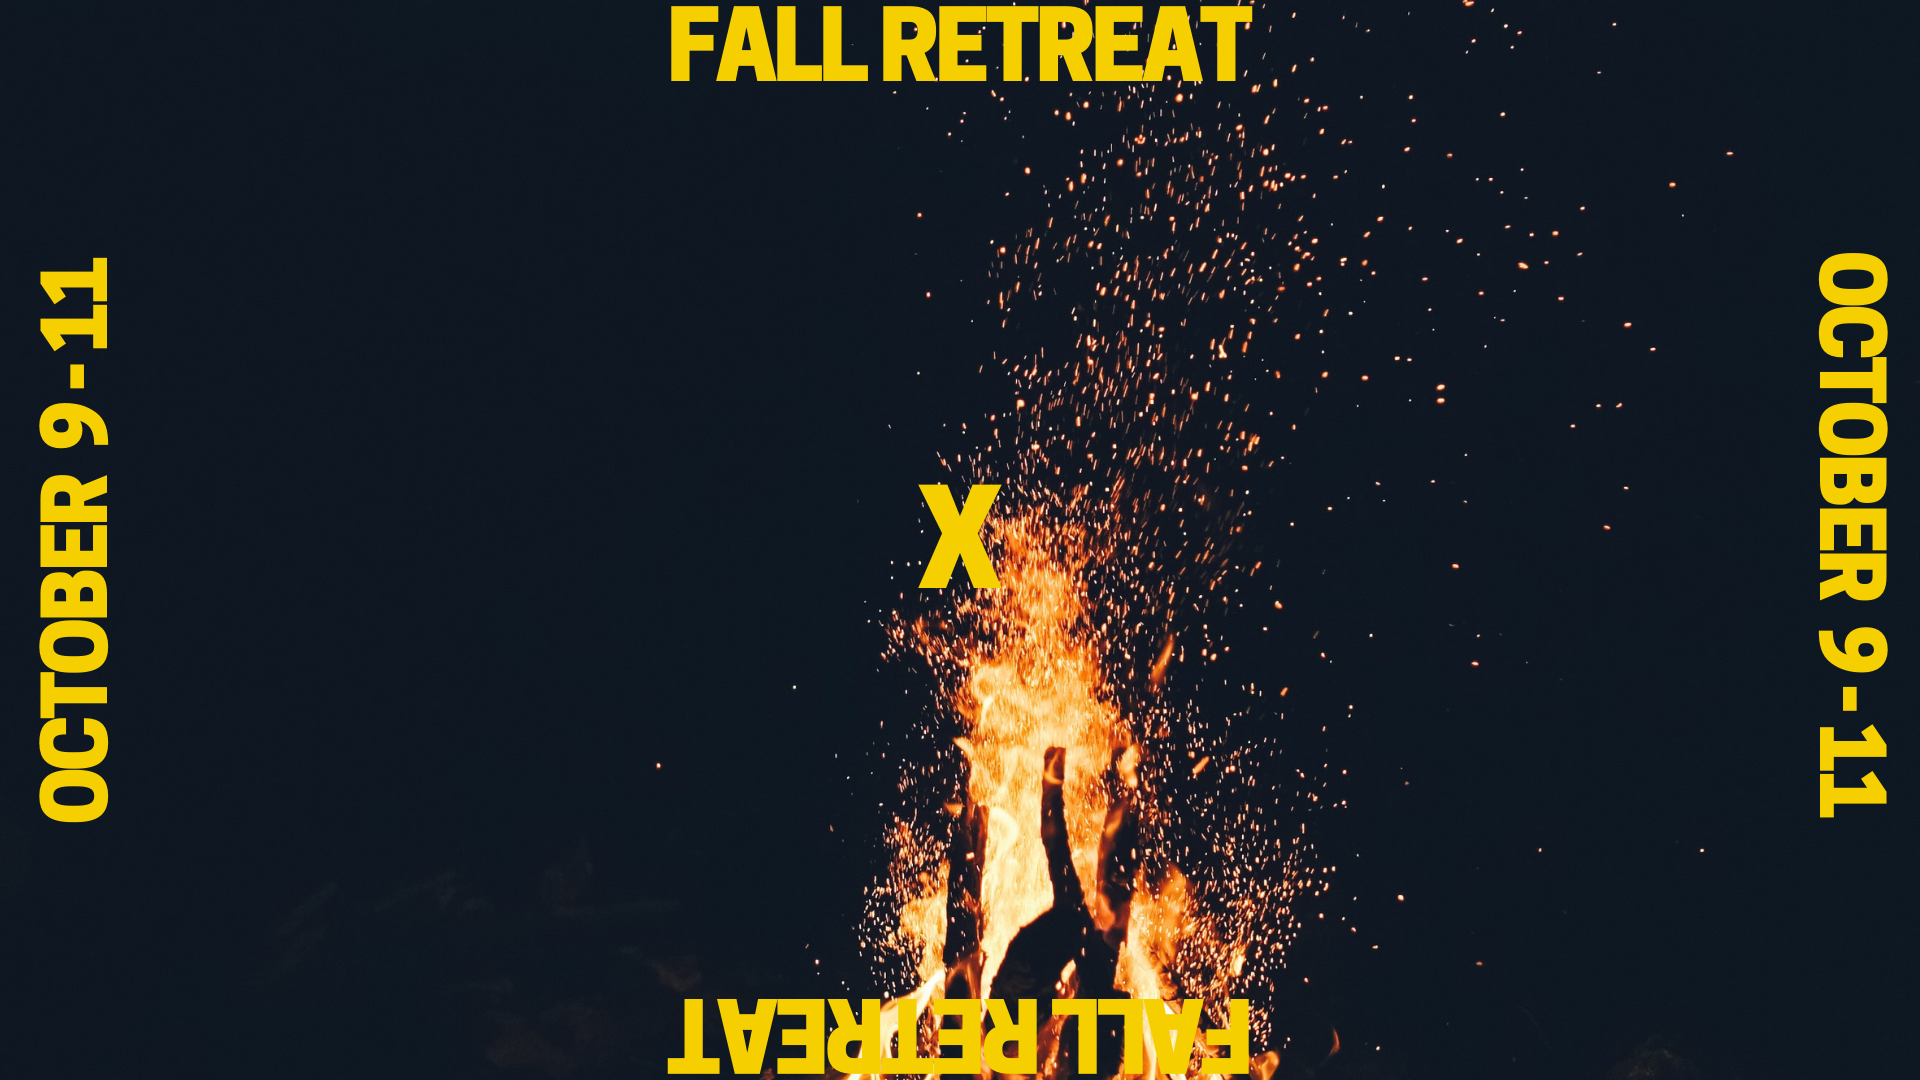 fall retreat slide